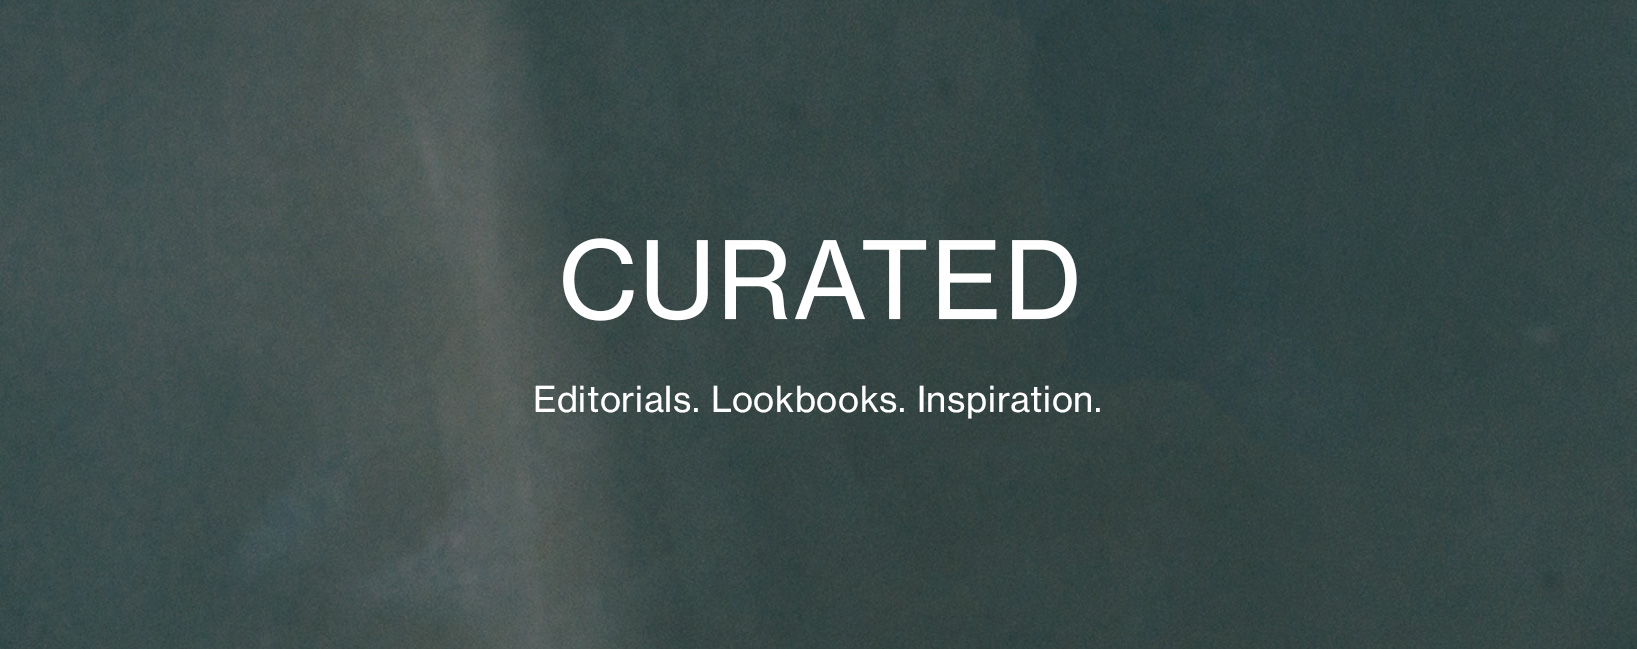 Curated